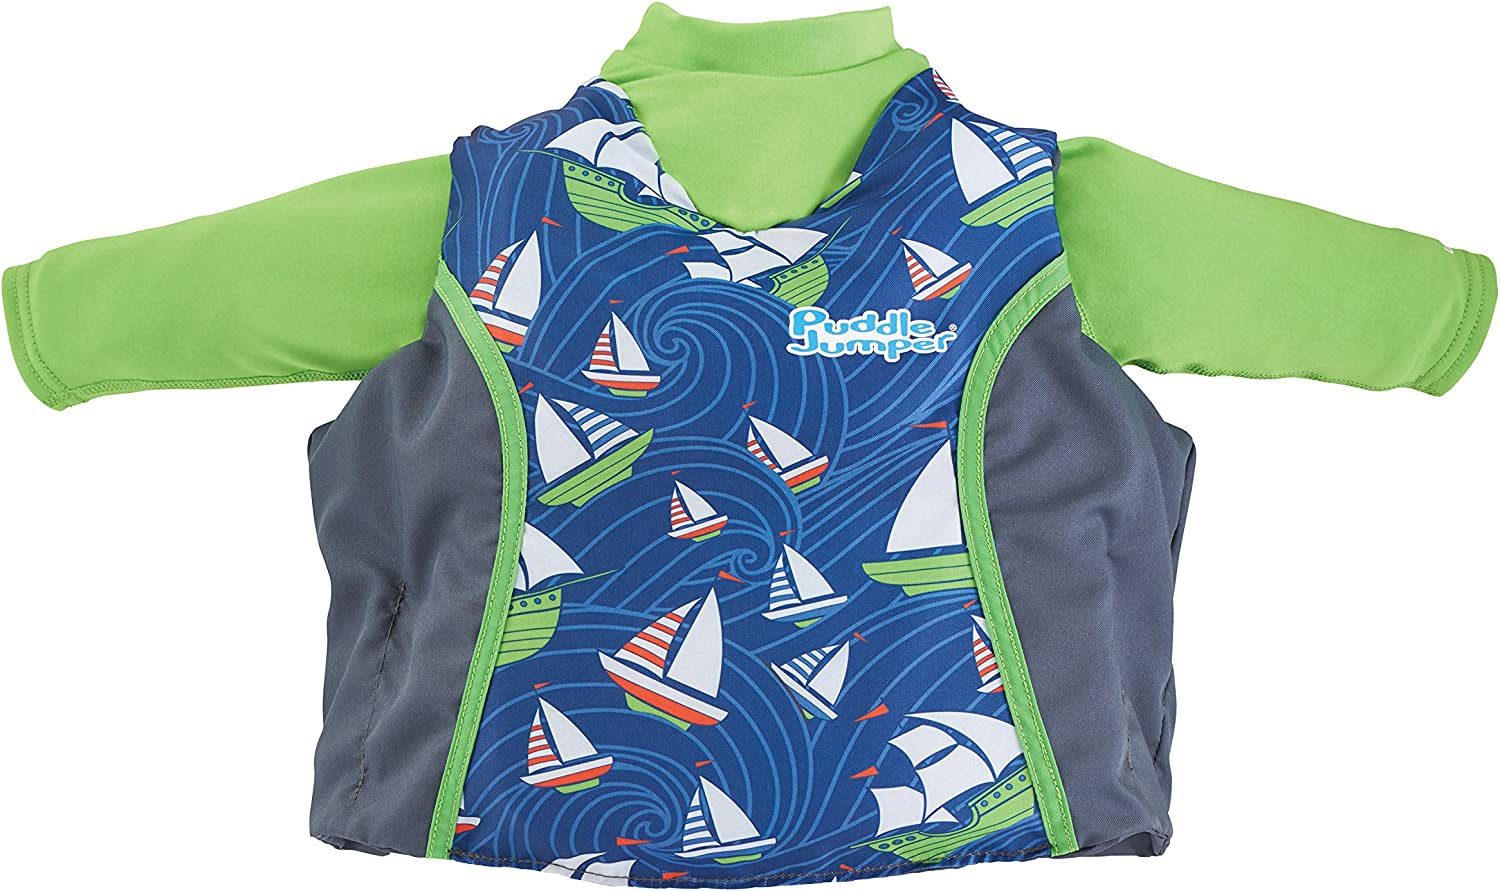 Puddle Jumper Kids 2-in-1 Life Jacket and Rash Guard